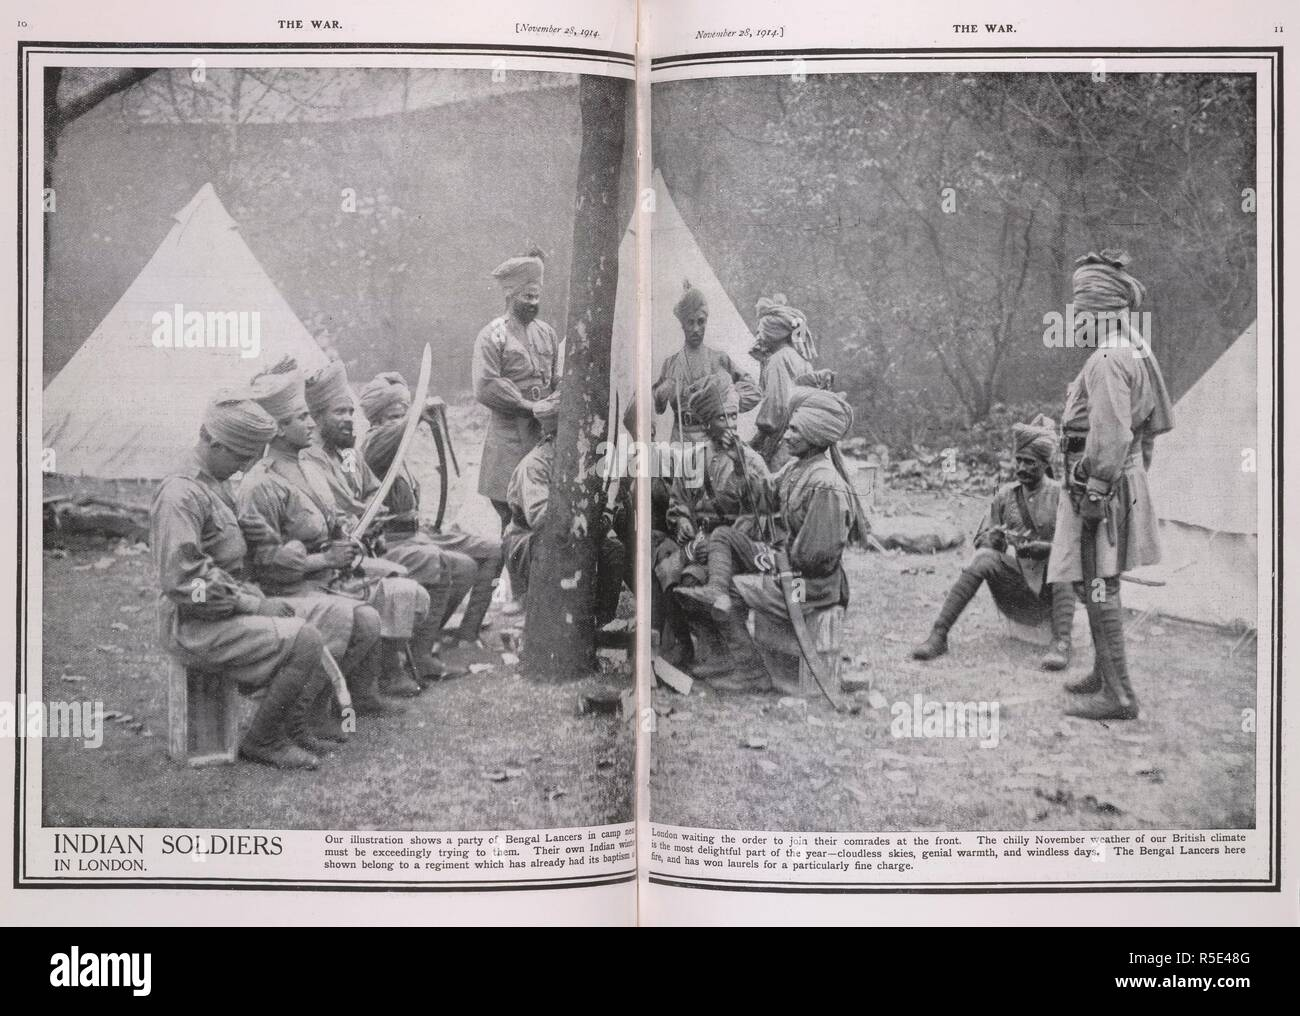 'Indian soldiers in London'. 'Bengal lancers in a camp near London waiting to join comrades at the front.' . The War. 1914. Source: The War, November 28, 1914, pages 10-11. - Stock Image